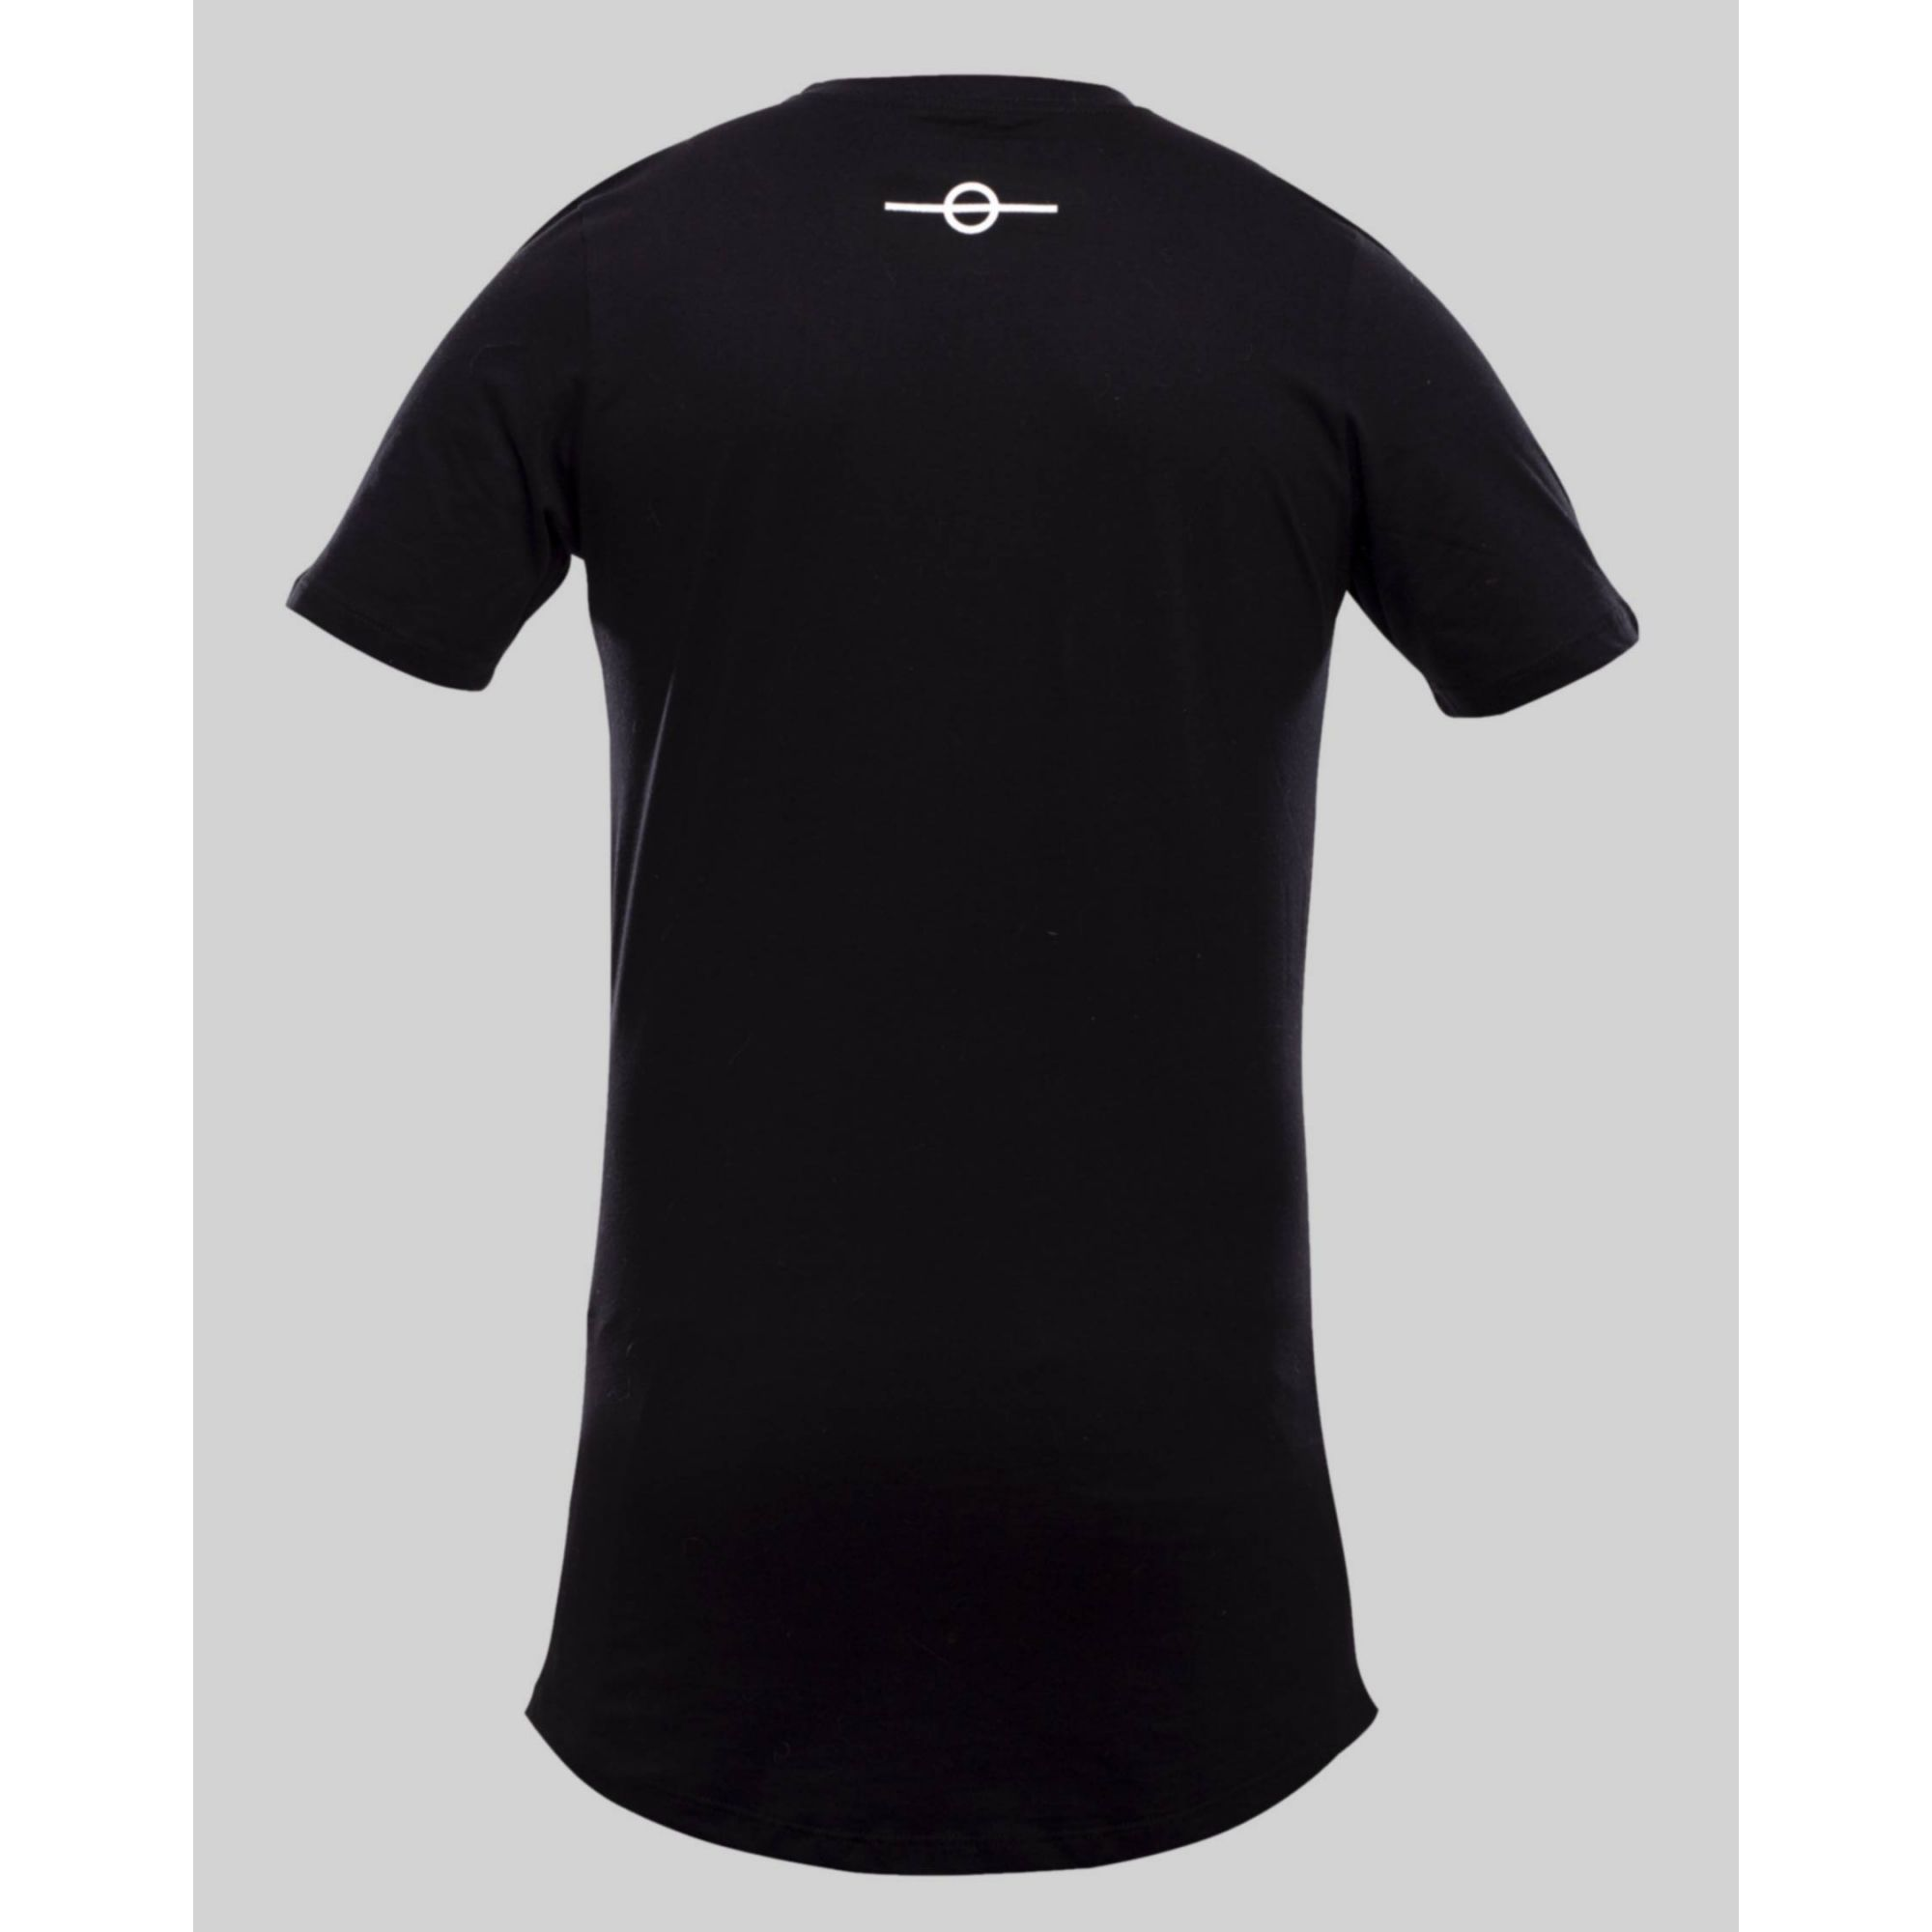 Camiseta Buh Bicolor Saved By Grace Black